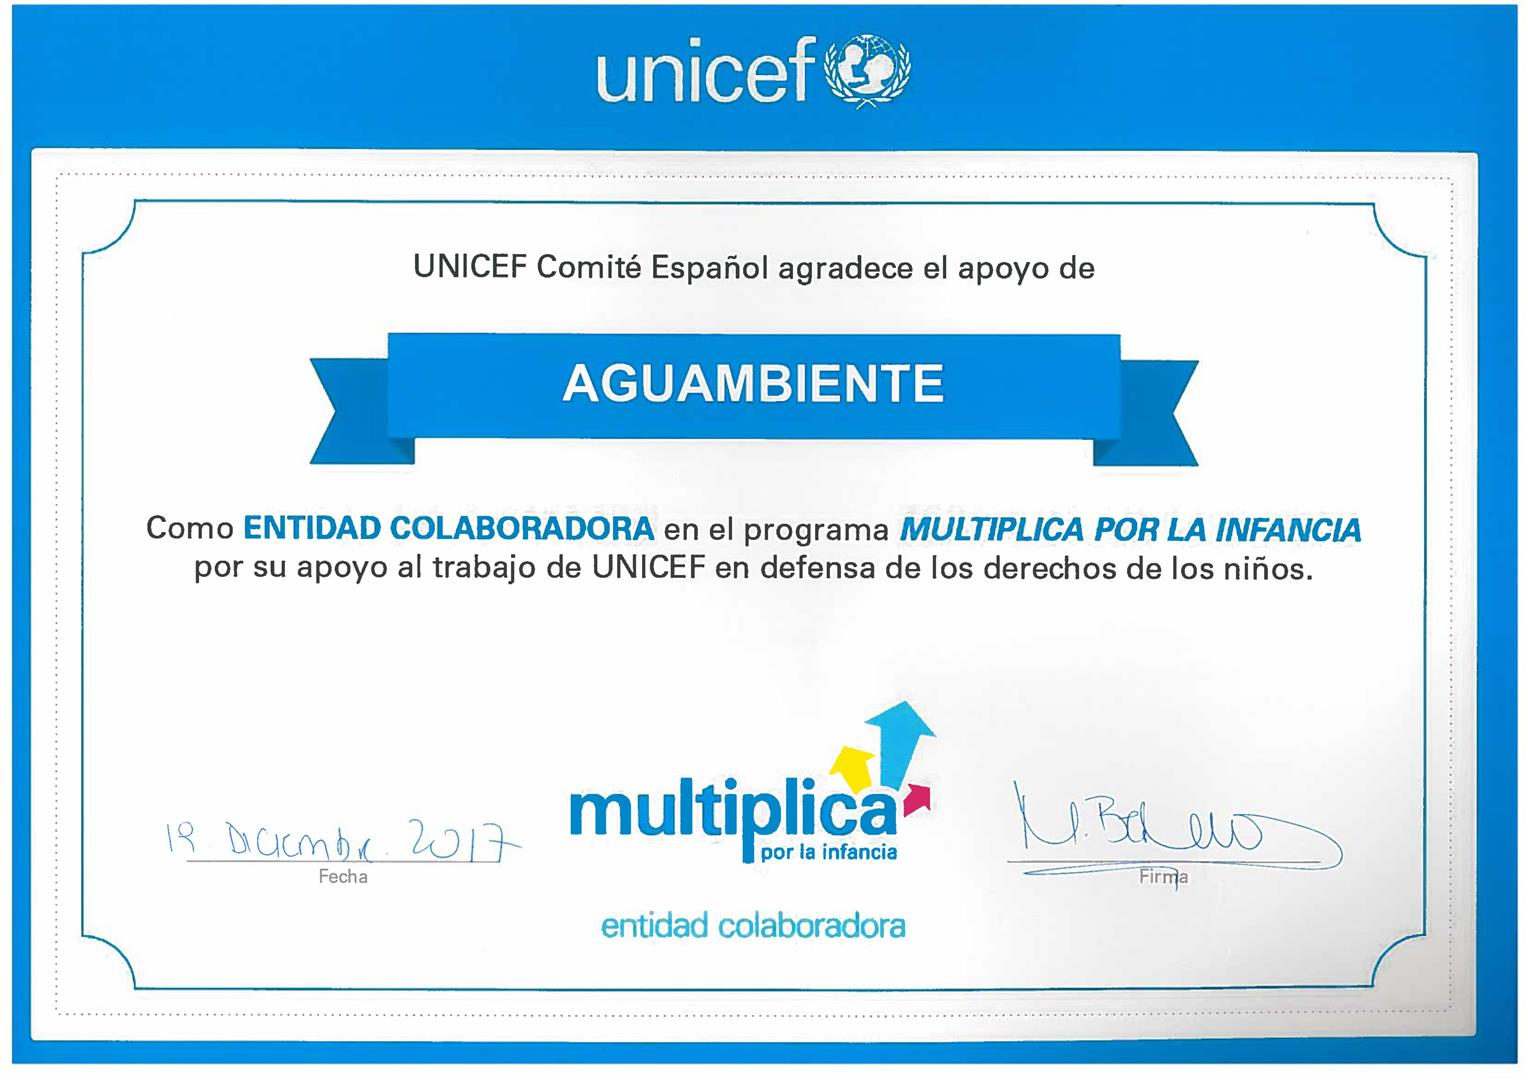 Aguambiente collaborates with Unicef